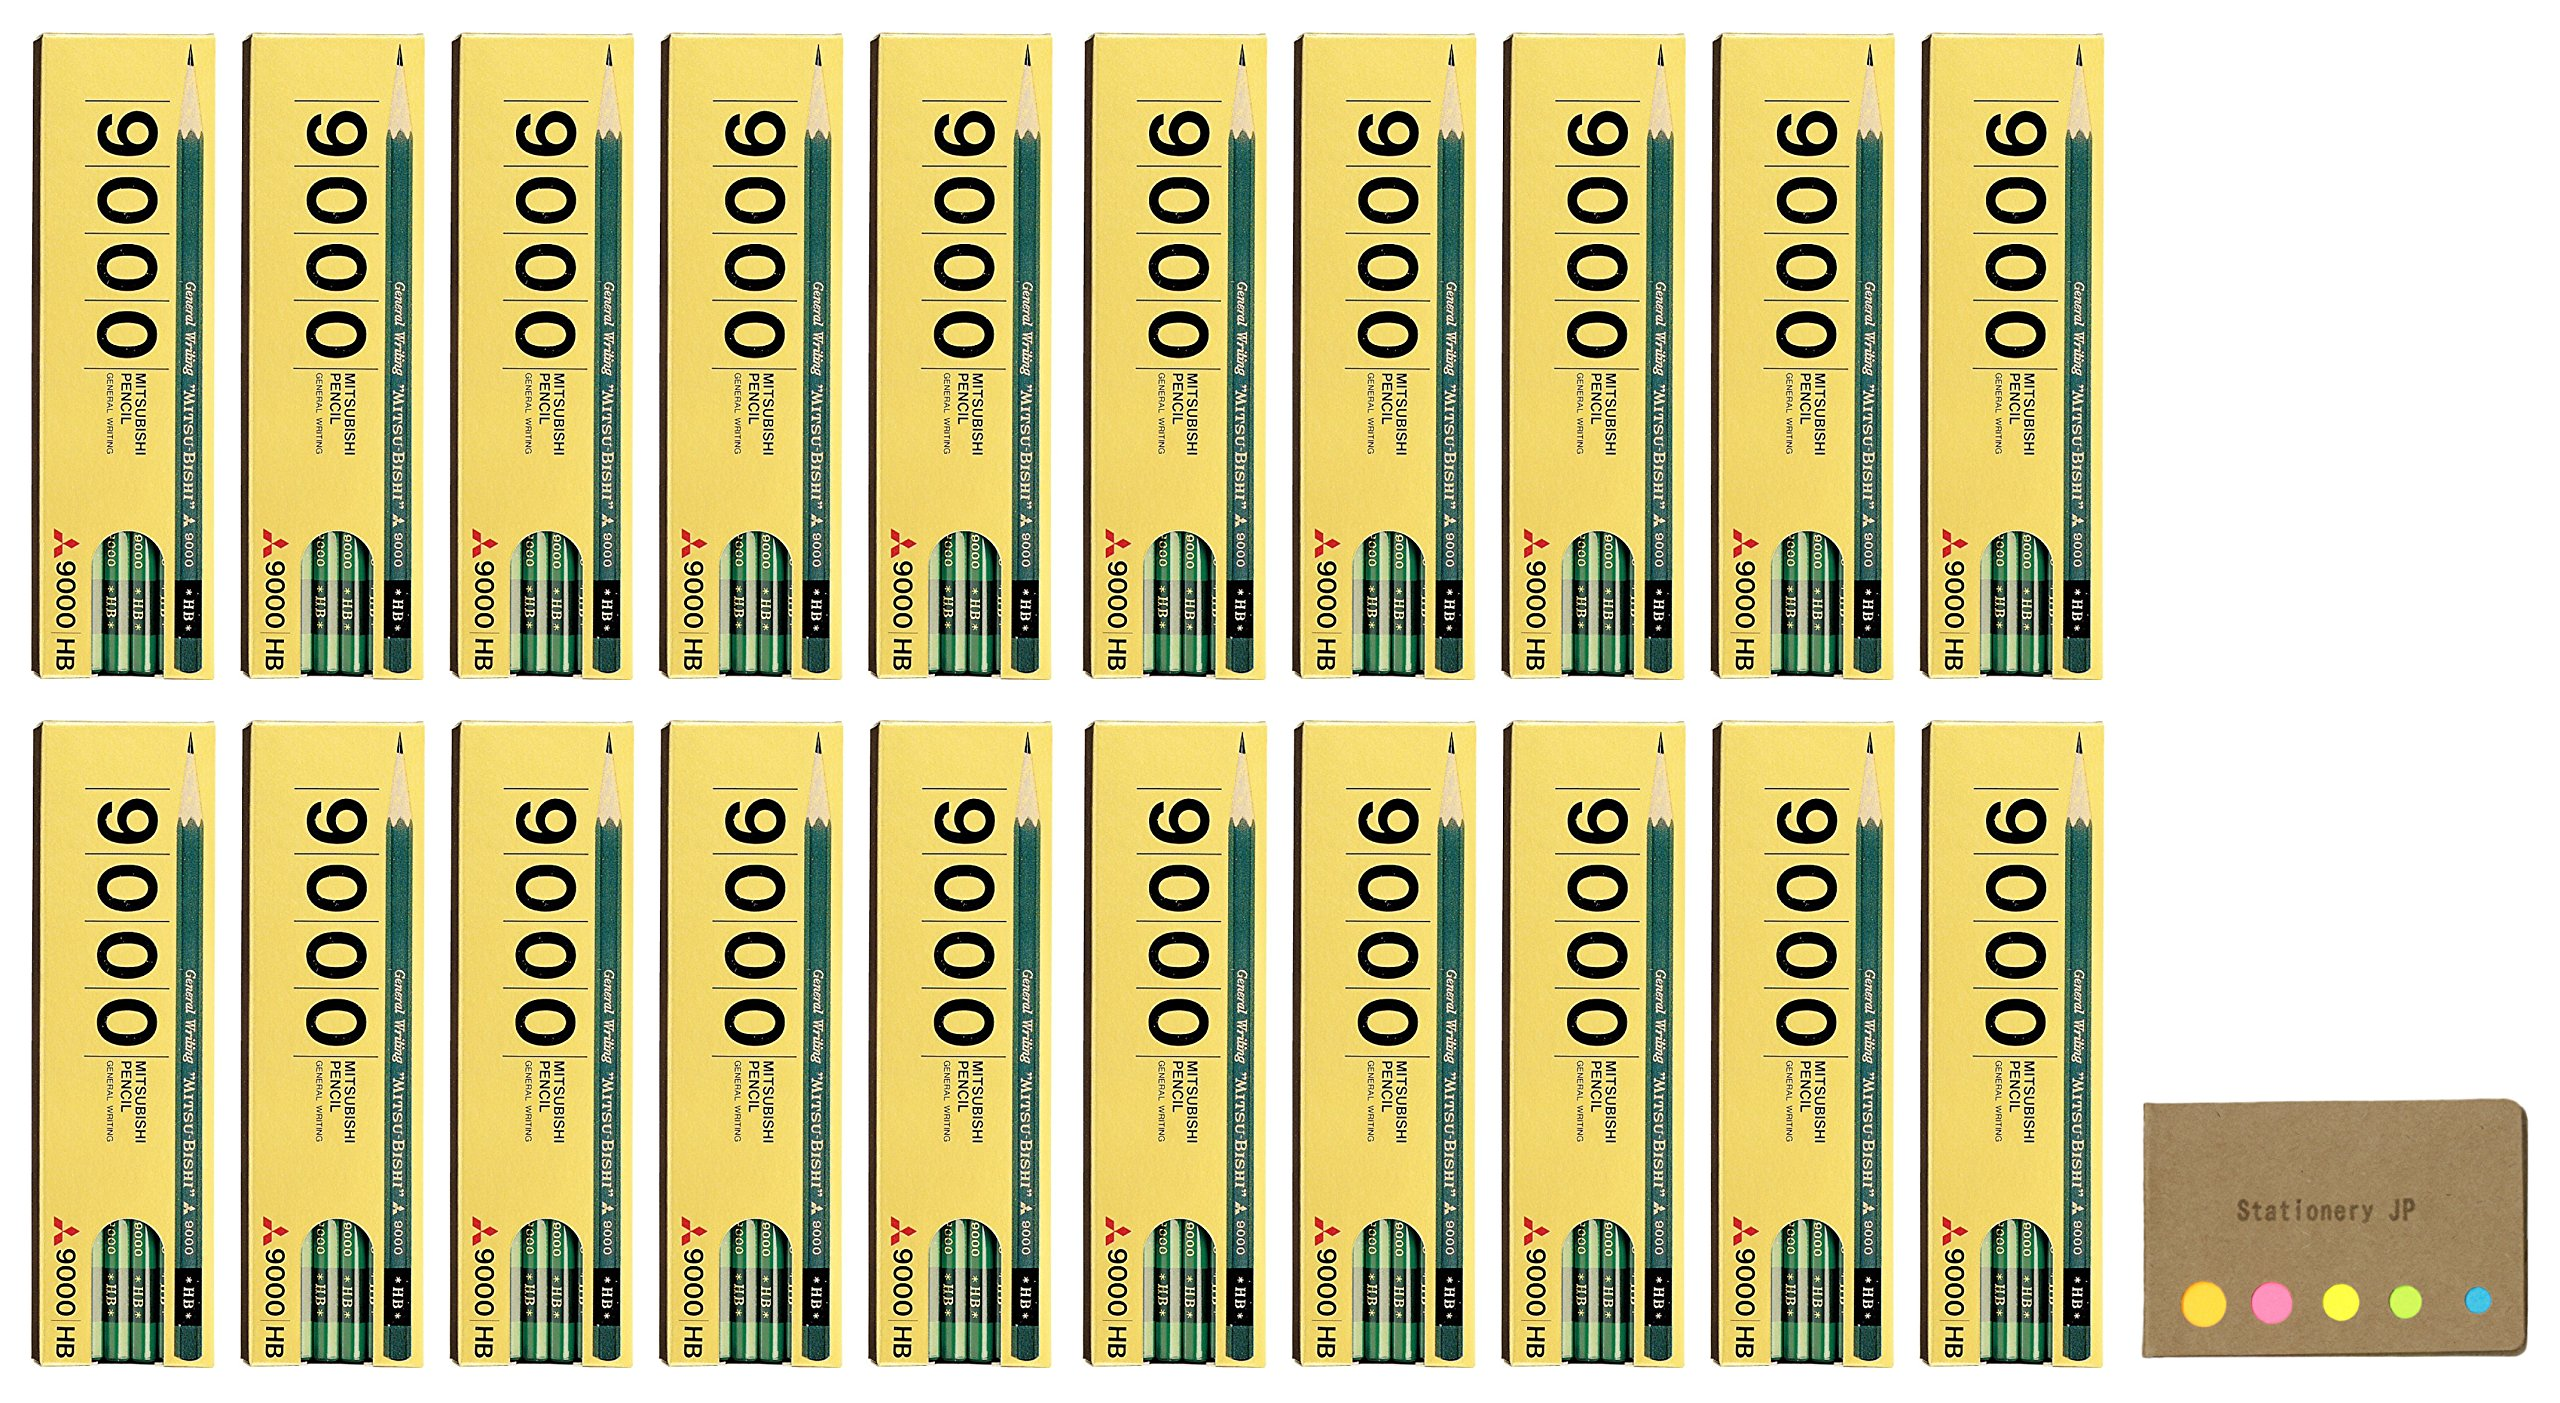 Uni Mitsubishi 9000 Pencil, HB, 20-pack/total 240 pcs, Sticky Notes Value Set by Stationery JP (Image #1)